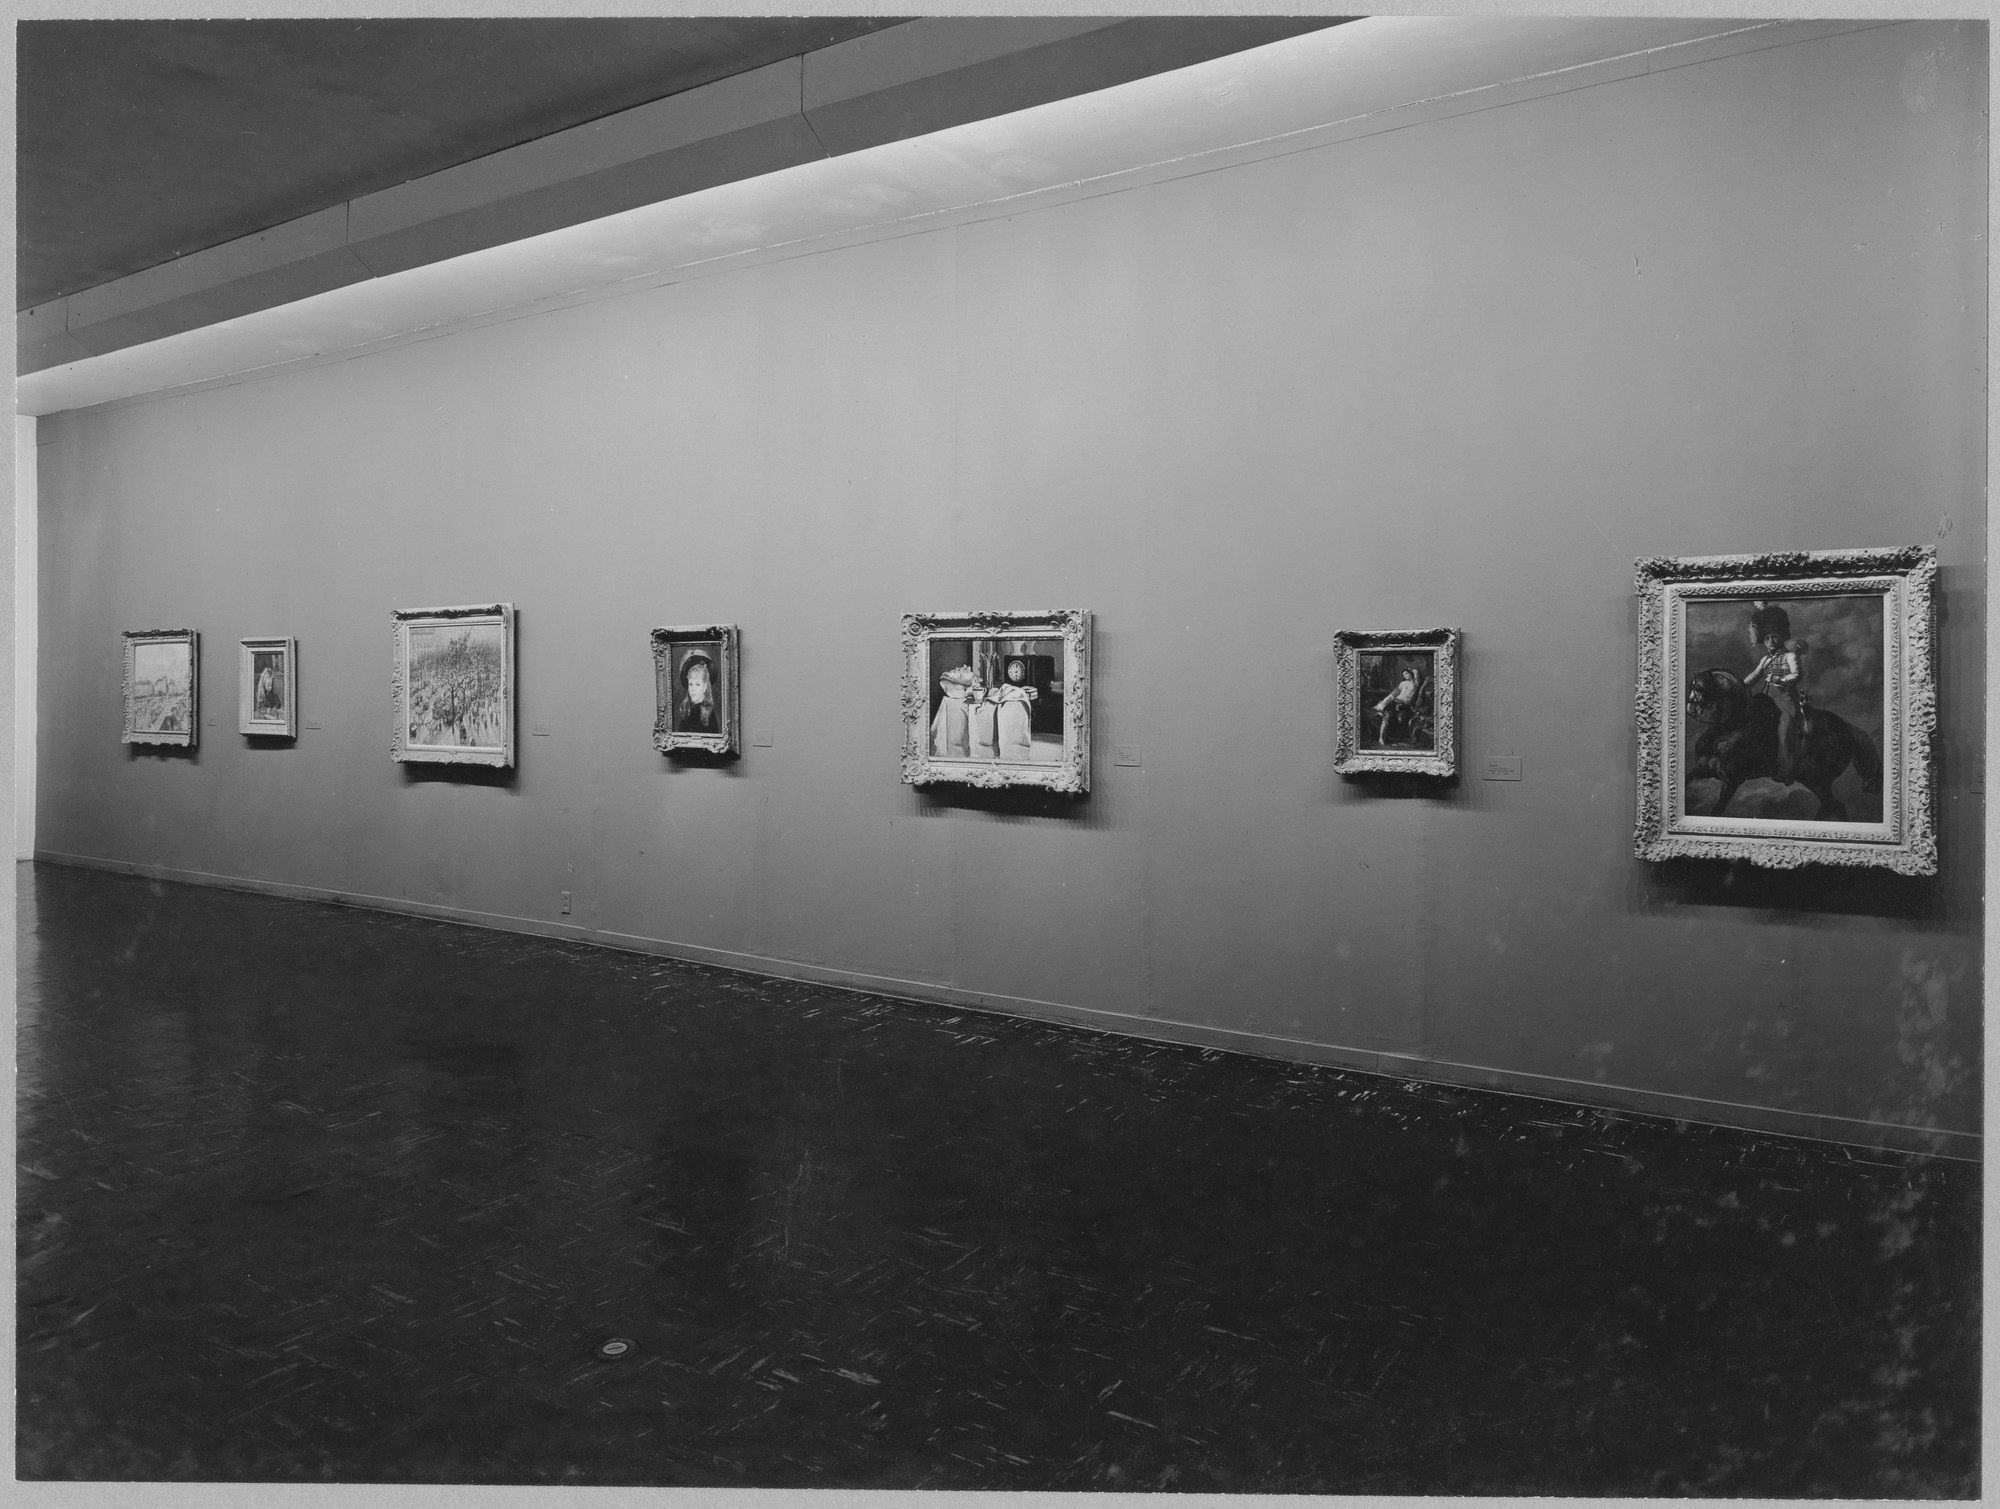 "Installation view of the exhibition, ""Edward G. Robinson Collection."" March 3, 1953–April 12, 1953. Photographic Archive. The Museum of Modern Art Archives, New York. IN533.1. Photograph by Soichi Sunami."